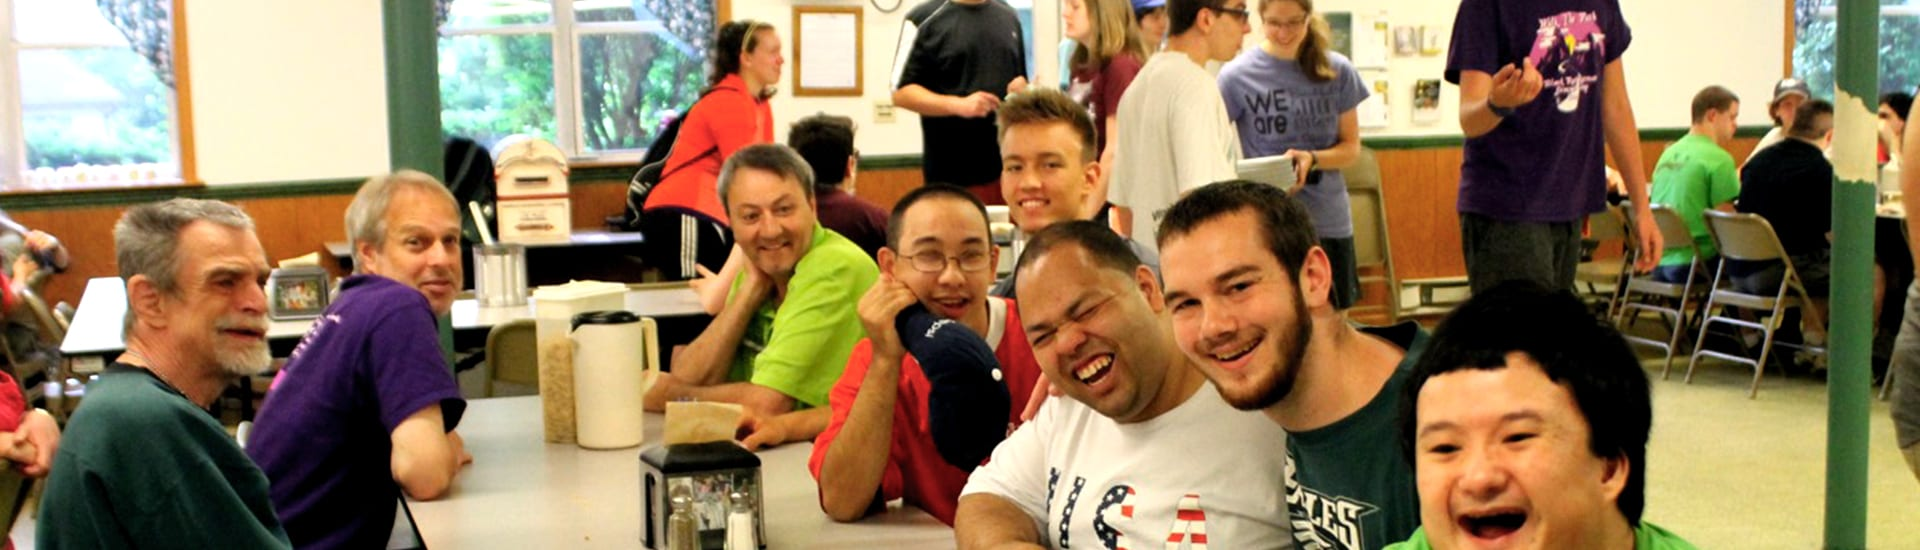 Summer Camp For People With Developmental Disabilities